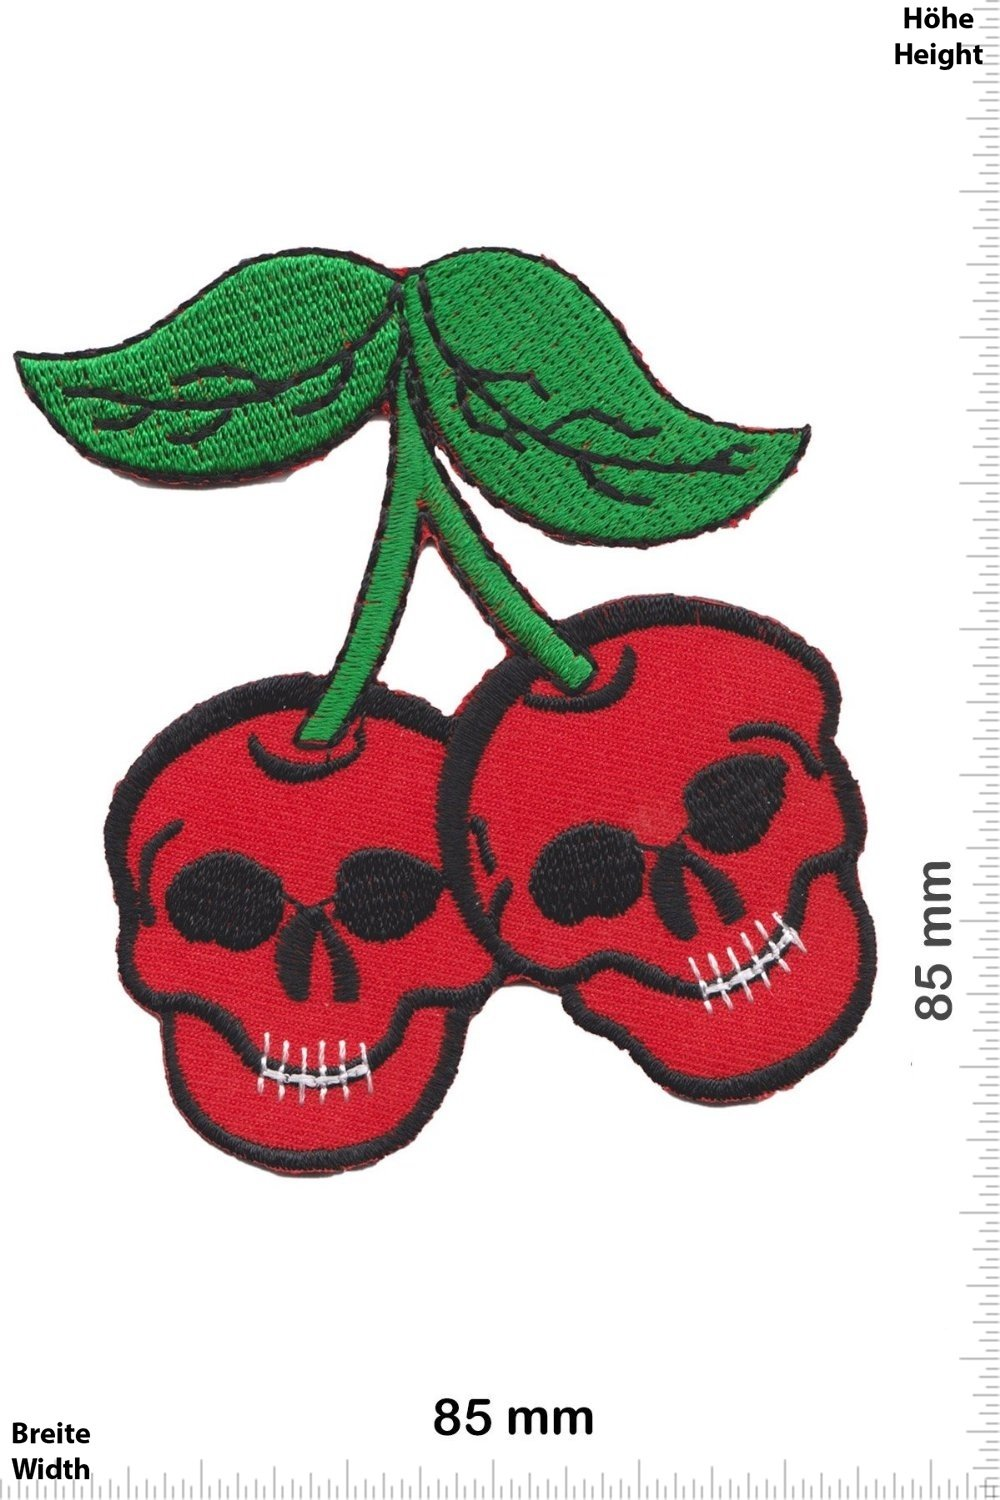 Patches - Skull Cherry - Oldschool - Rockabilly - Tatoo - Old School Punk Rocks- Vest - Iron on Patch - Applique embroidery Écusson brodé Costume Cadeau- Give Away